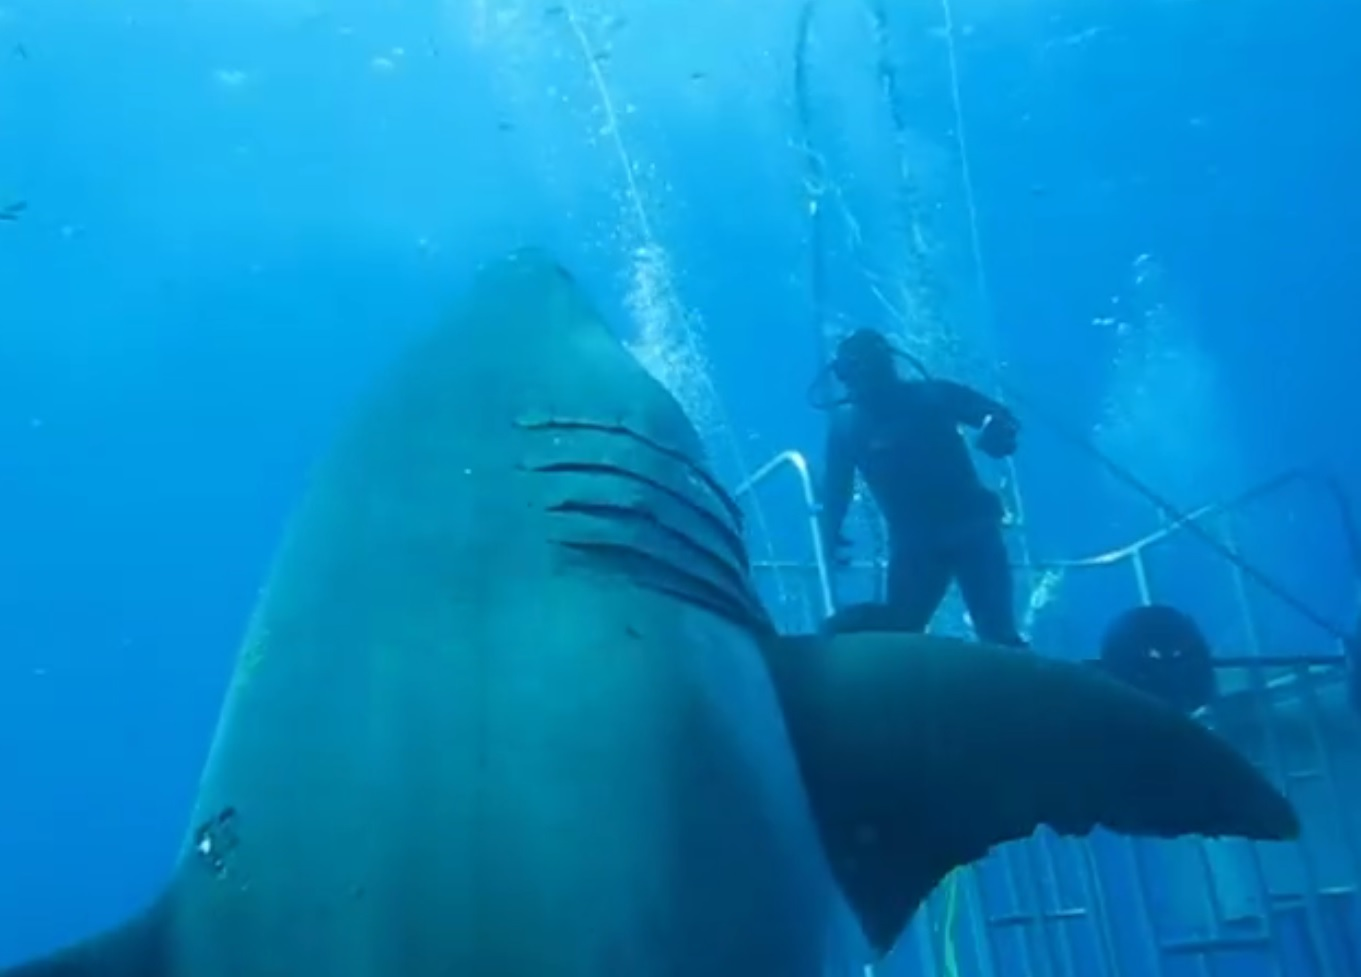 Is This The Biggest Great White Shark Ever Filmed